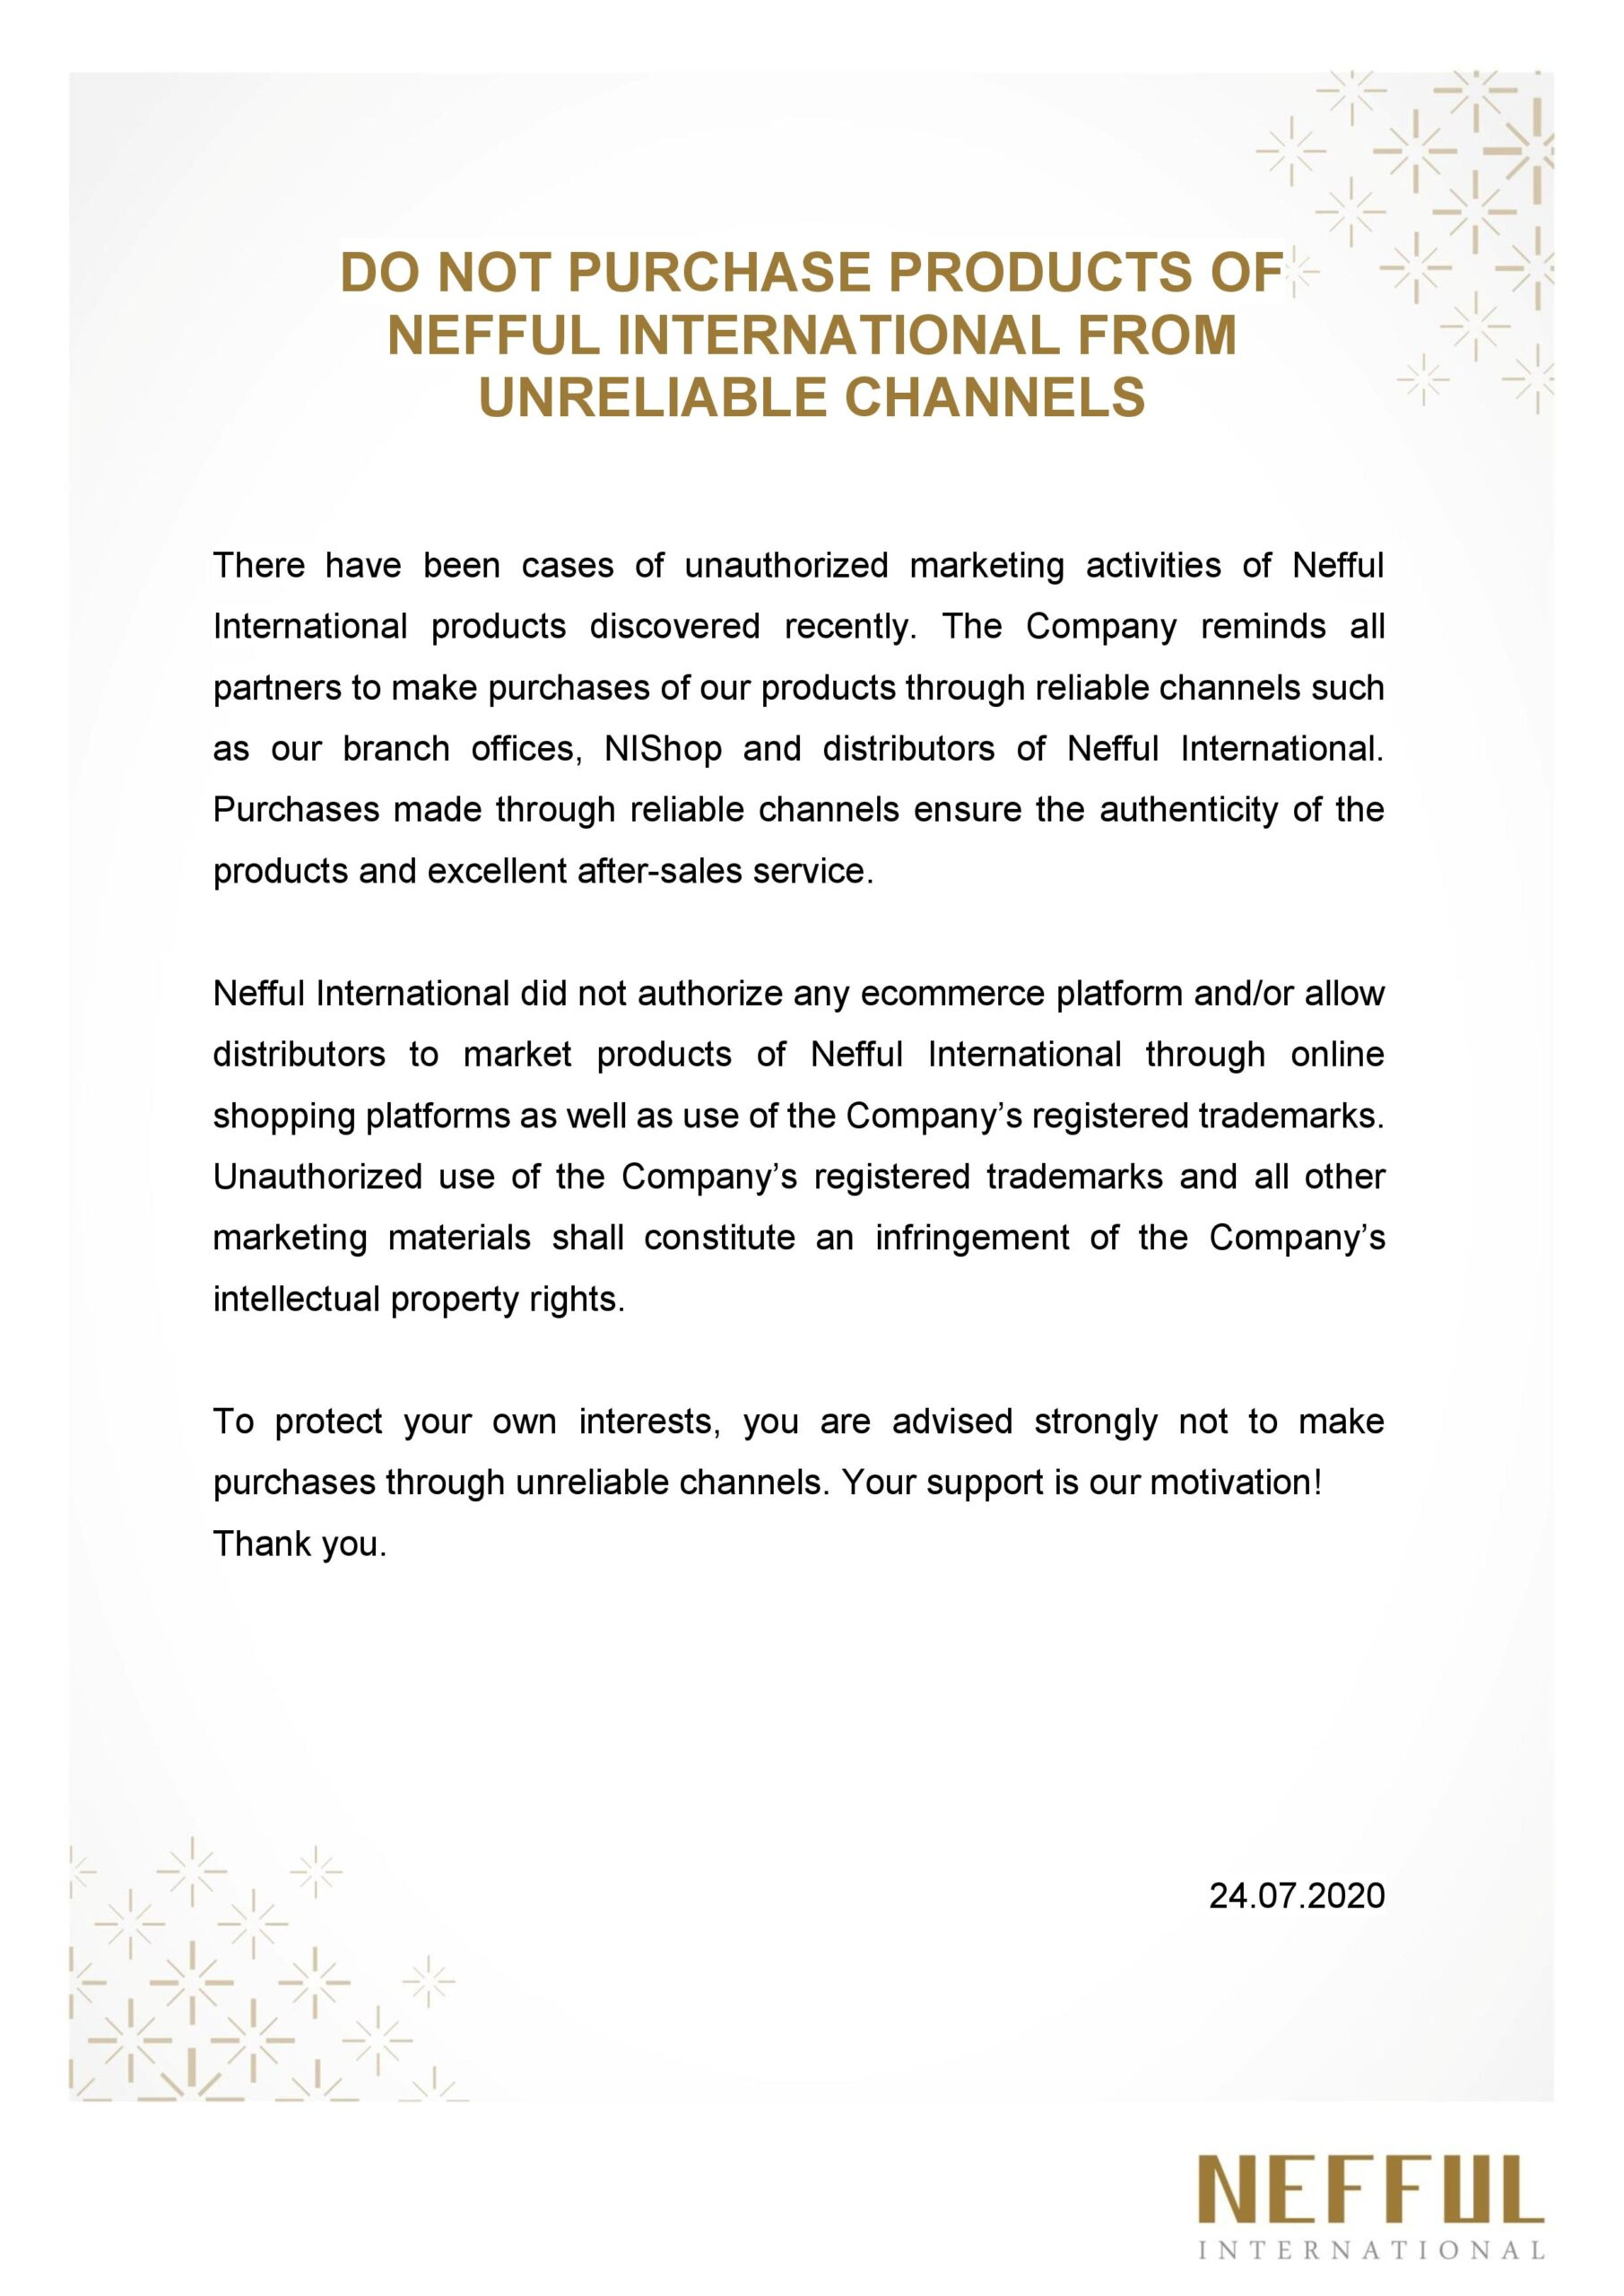 DO NOT PURCHASE PRODUCTS OF NEFFUL INTERNATIONAL FROM UNRELIABLE CHANNELS_24072020-page-001